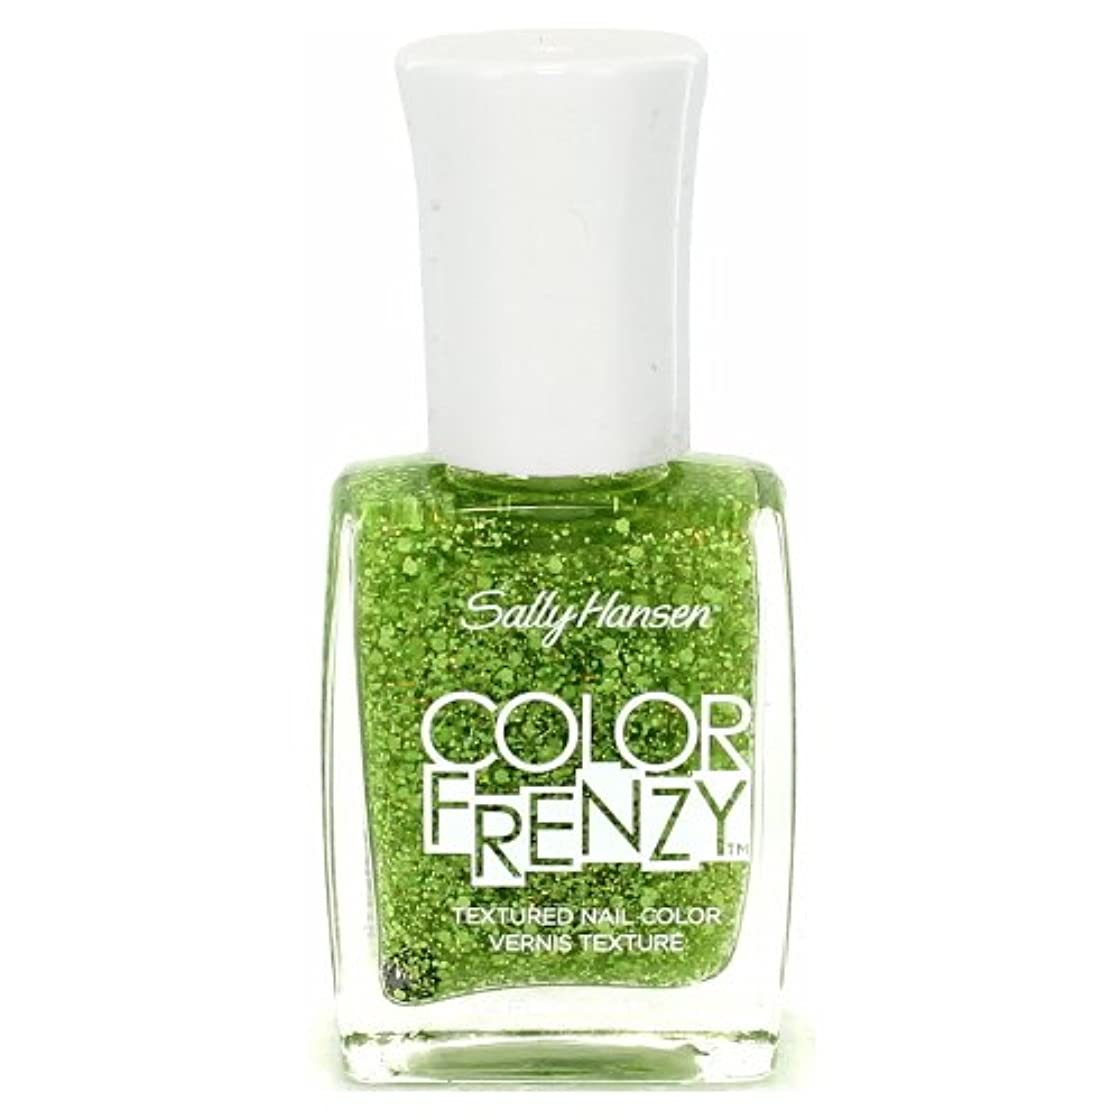 ナンセンス学者気になる(6 Pack) SALLY HANSEN Color Frenzy Textured Nail Color - Green Machine (並行輸入品)